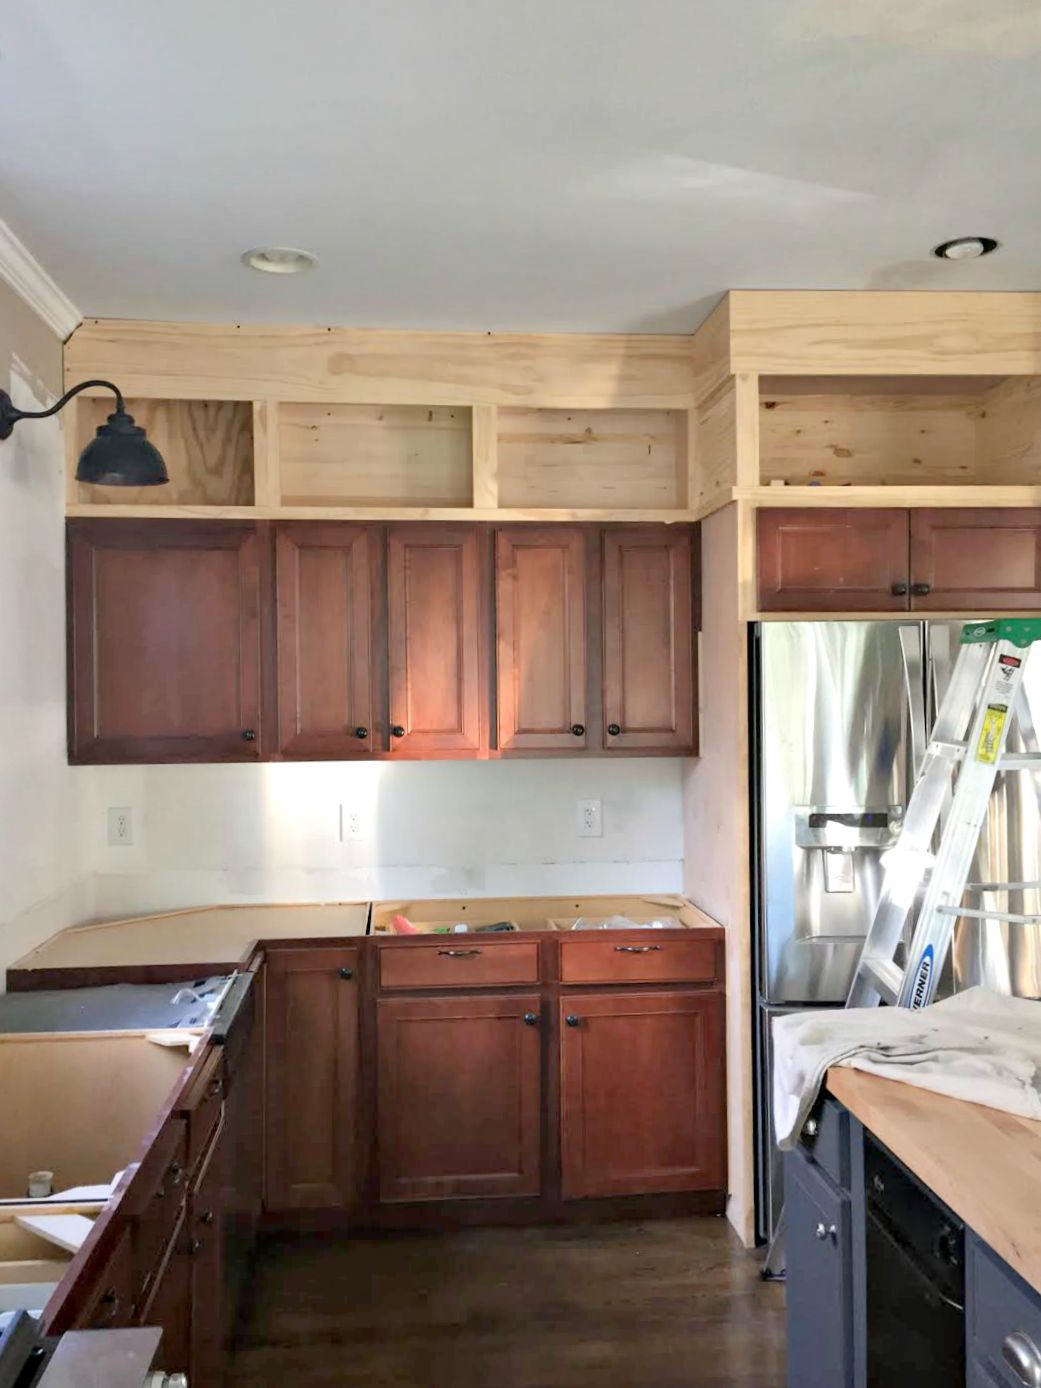 Kitchen Cabinets Up To Ceiling building cabinets up to the ceiling from thrifty decor chick